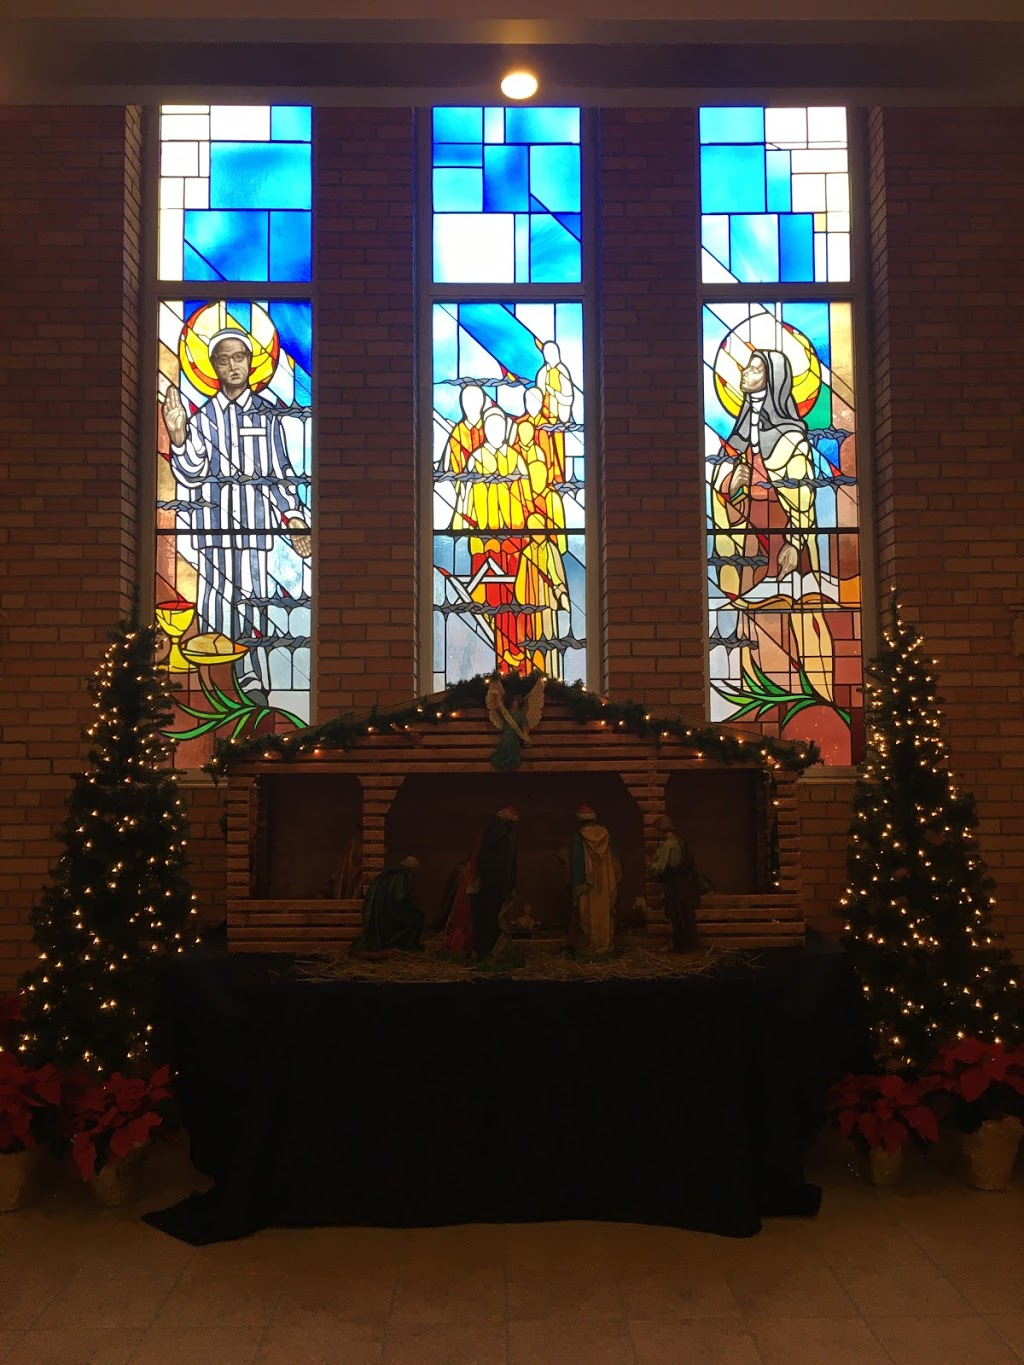 St Mary Magdalen Parish - church  | Photo 6 of 9 | Address: 50 E Annabelle Ave, Hazel Park, MI 48030, USA | Phone: (248) 542-8060